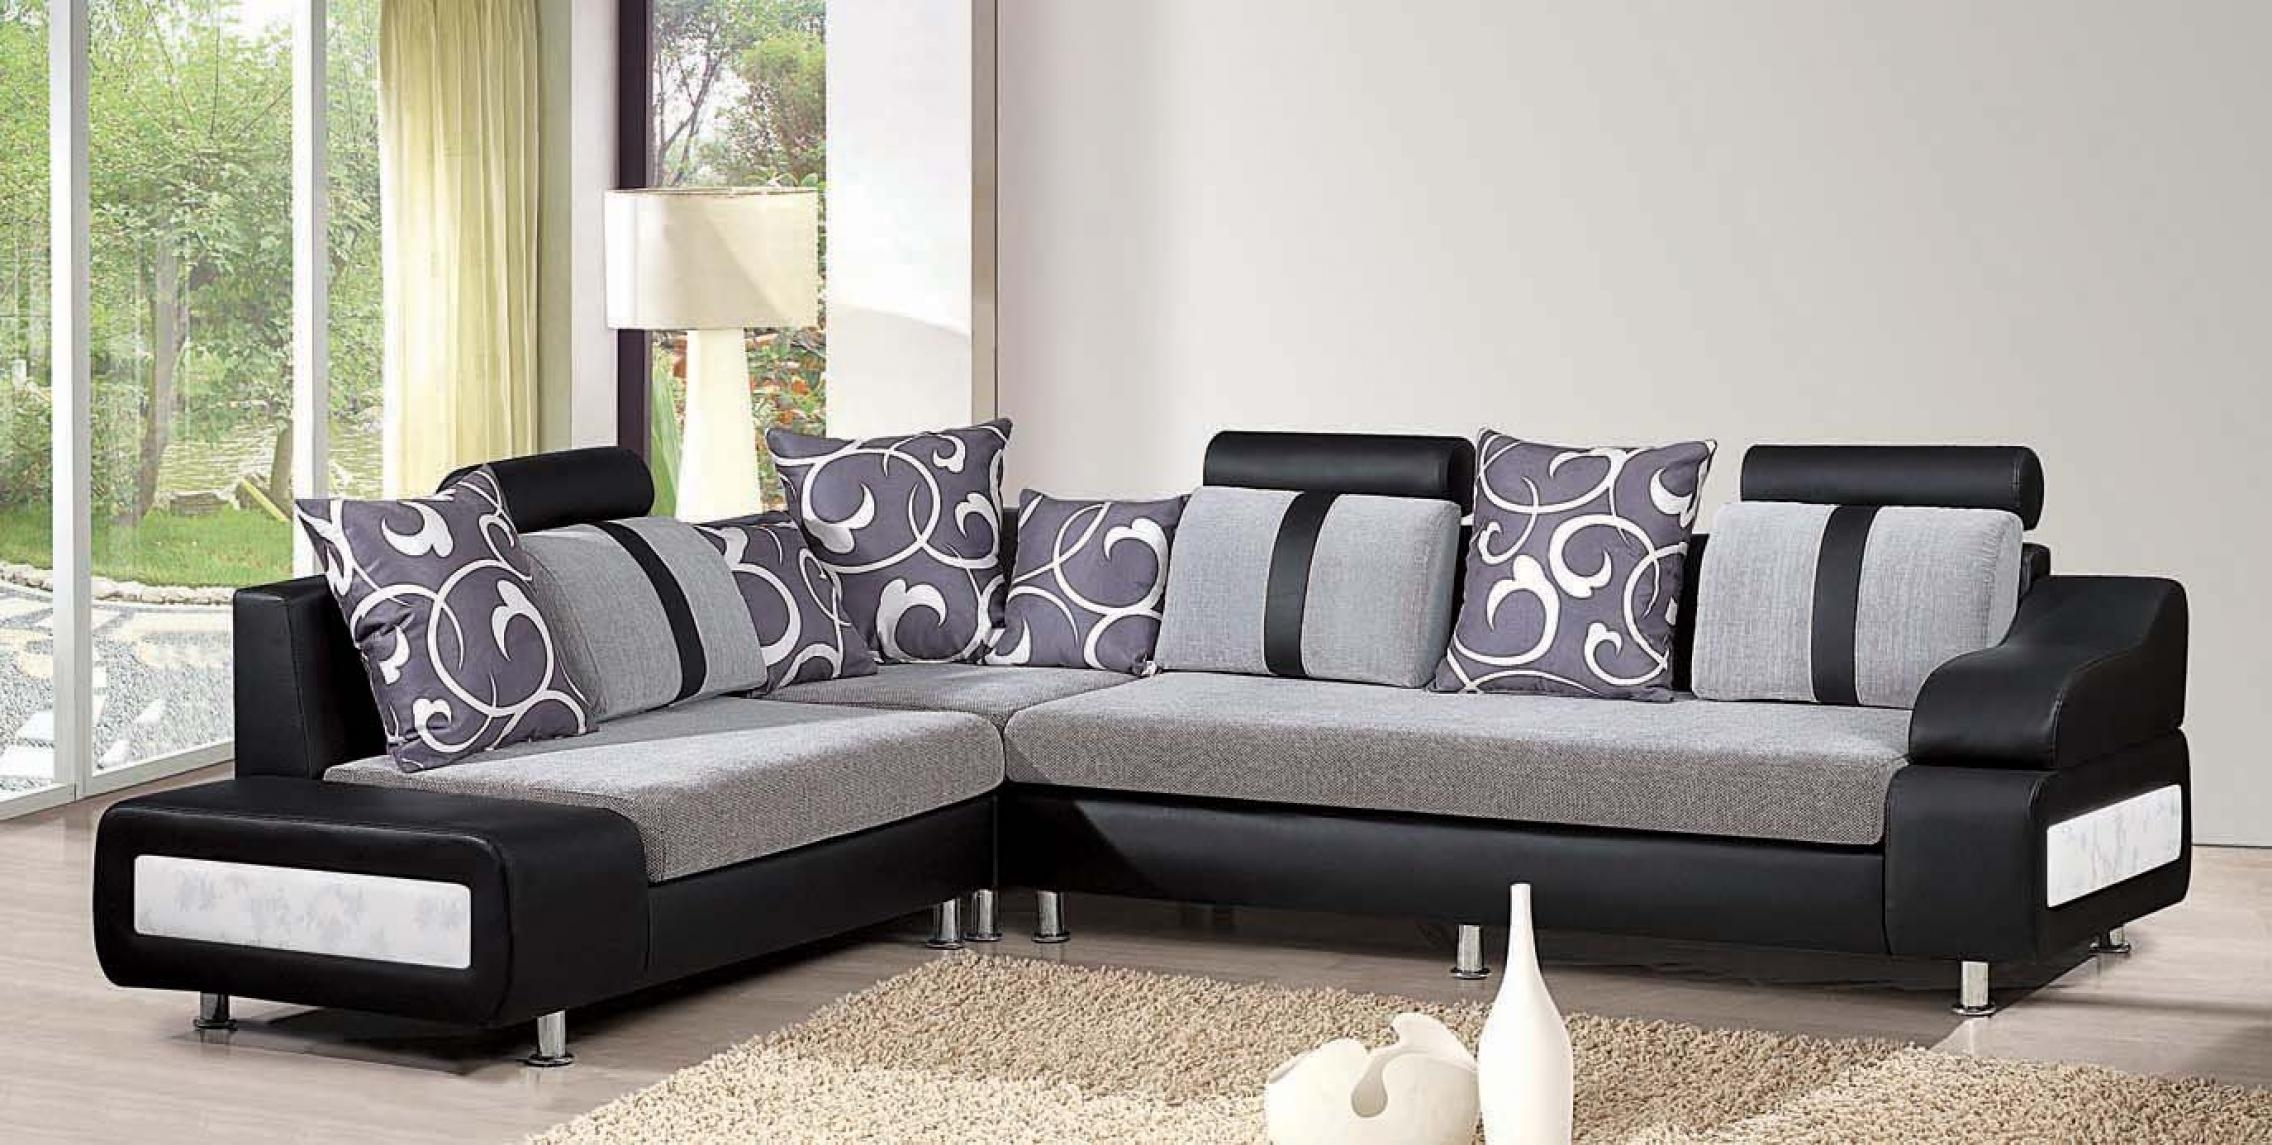 59196C33240Fa72Ac19756B964542A2E With Elegant Sofa Chair Pertaining To Wide Sofa Chairs (Image 1 of 20)